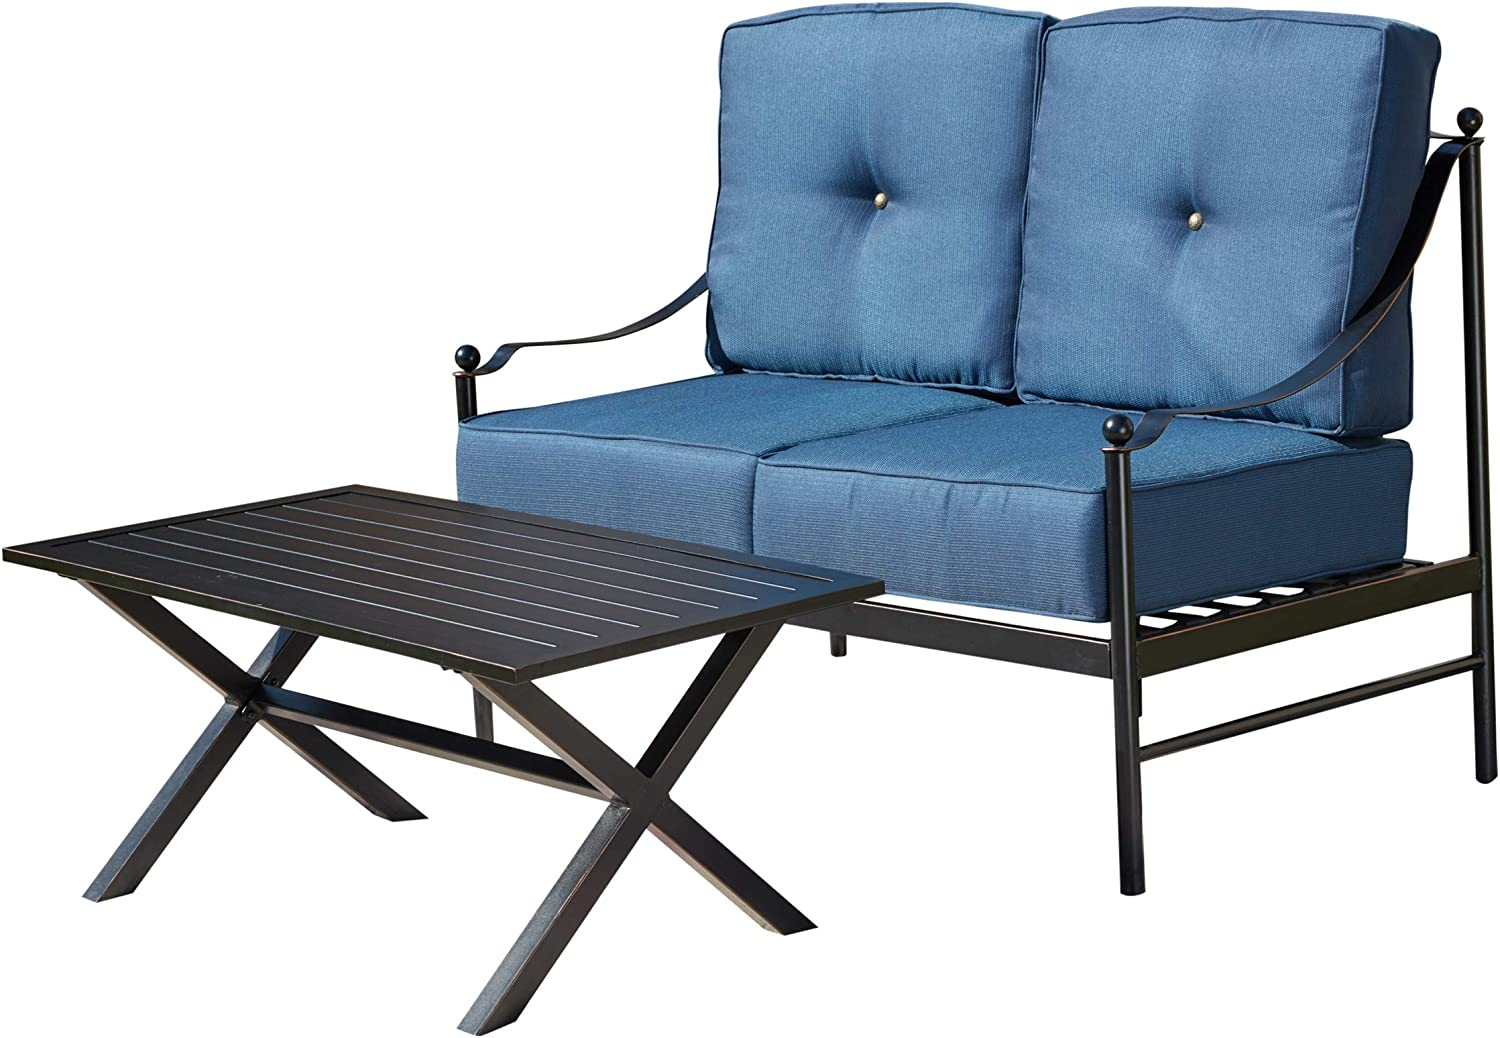 LOKATSE HOME 2-Piece Outdoor Patio Max 73% OFF 1 Low price Set Loveseat Furniture with